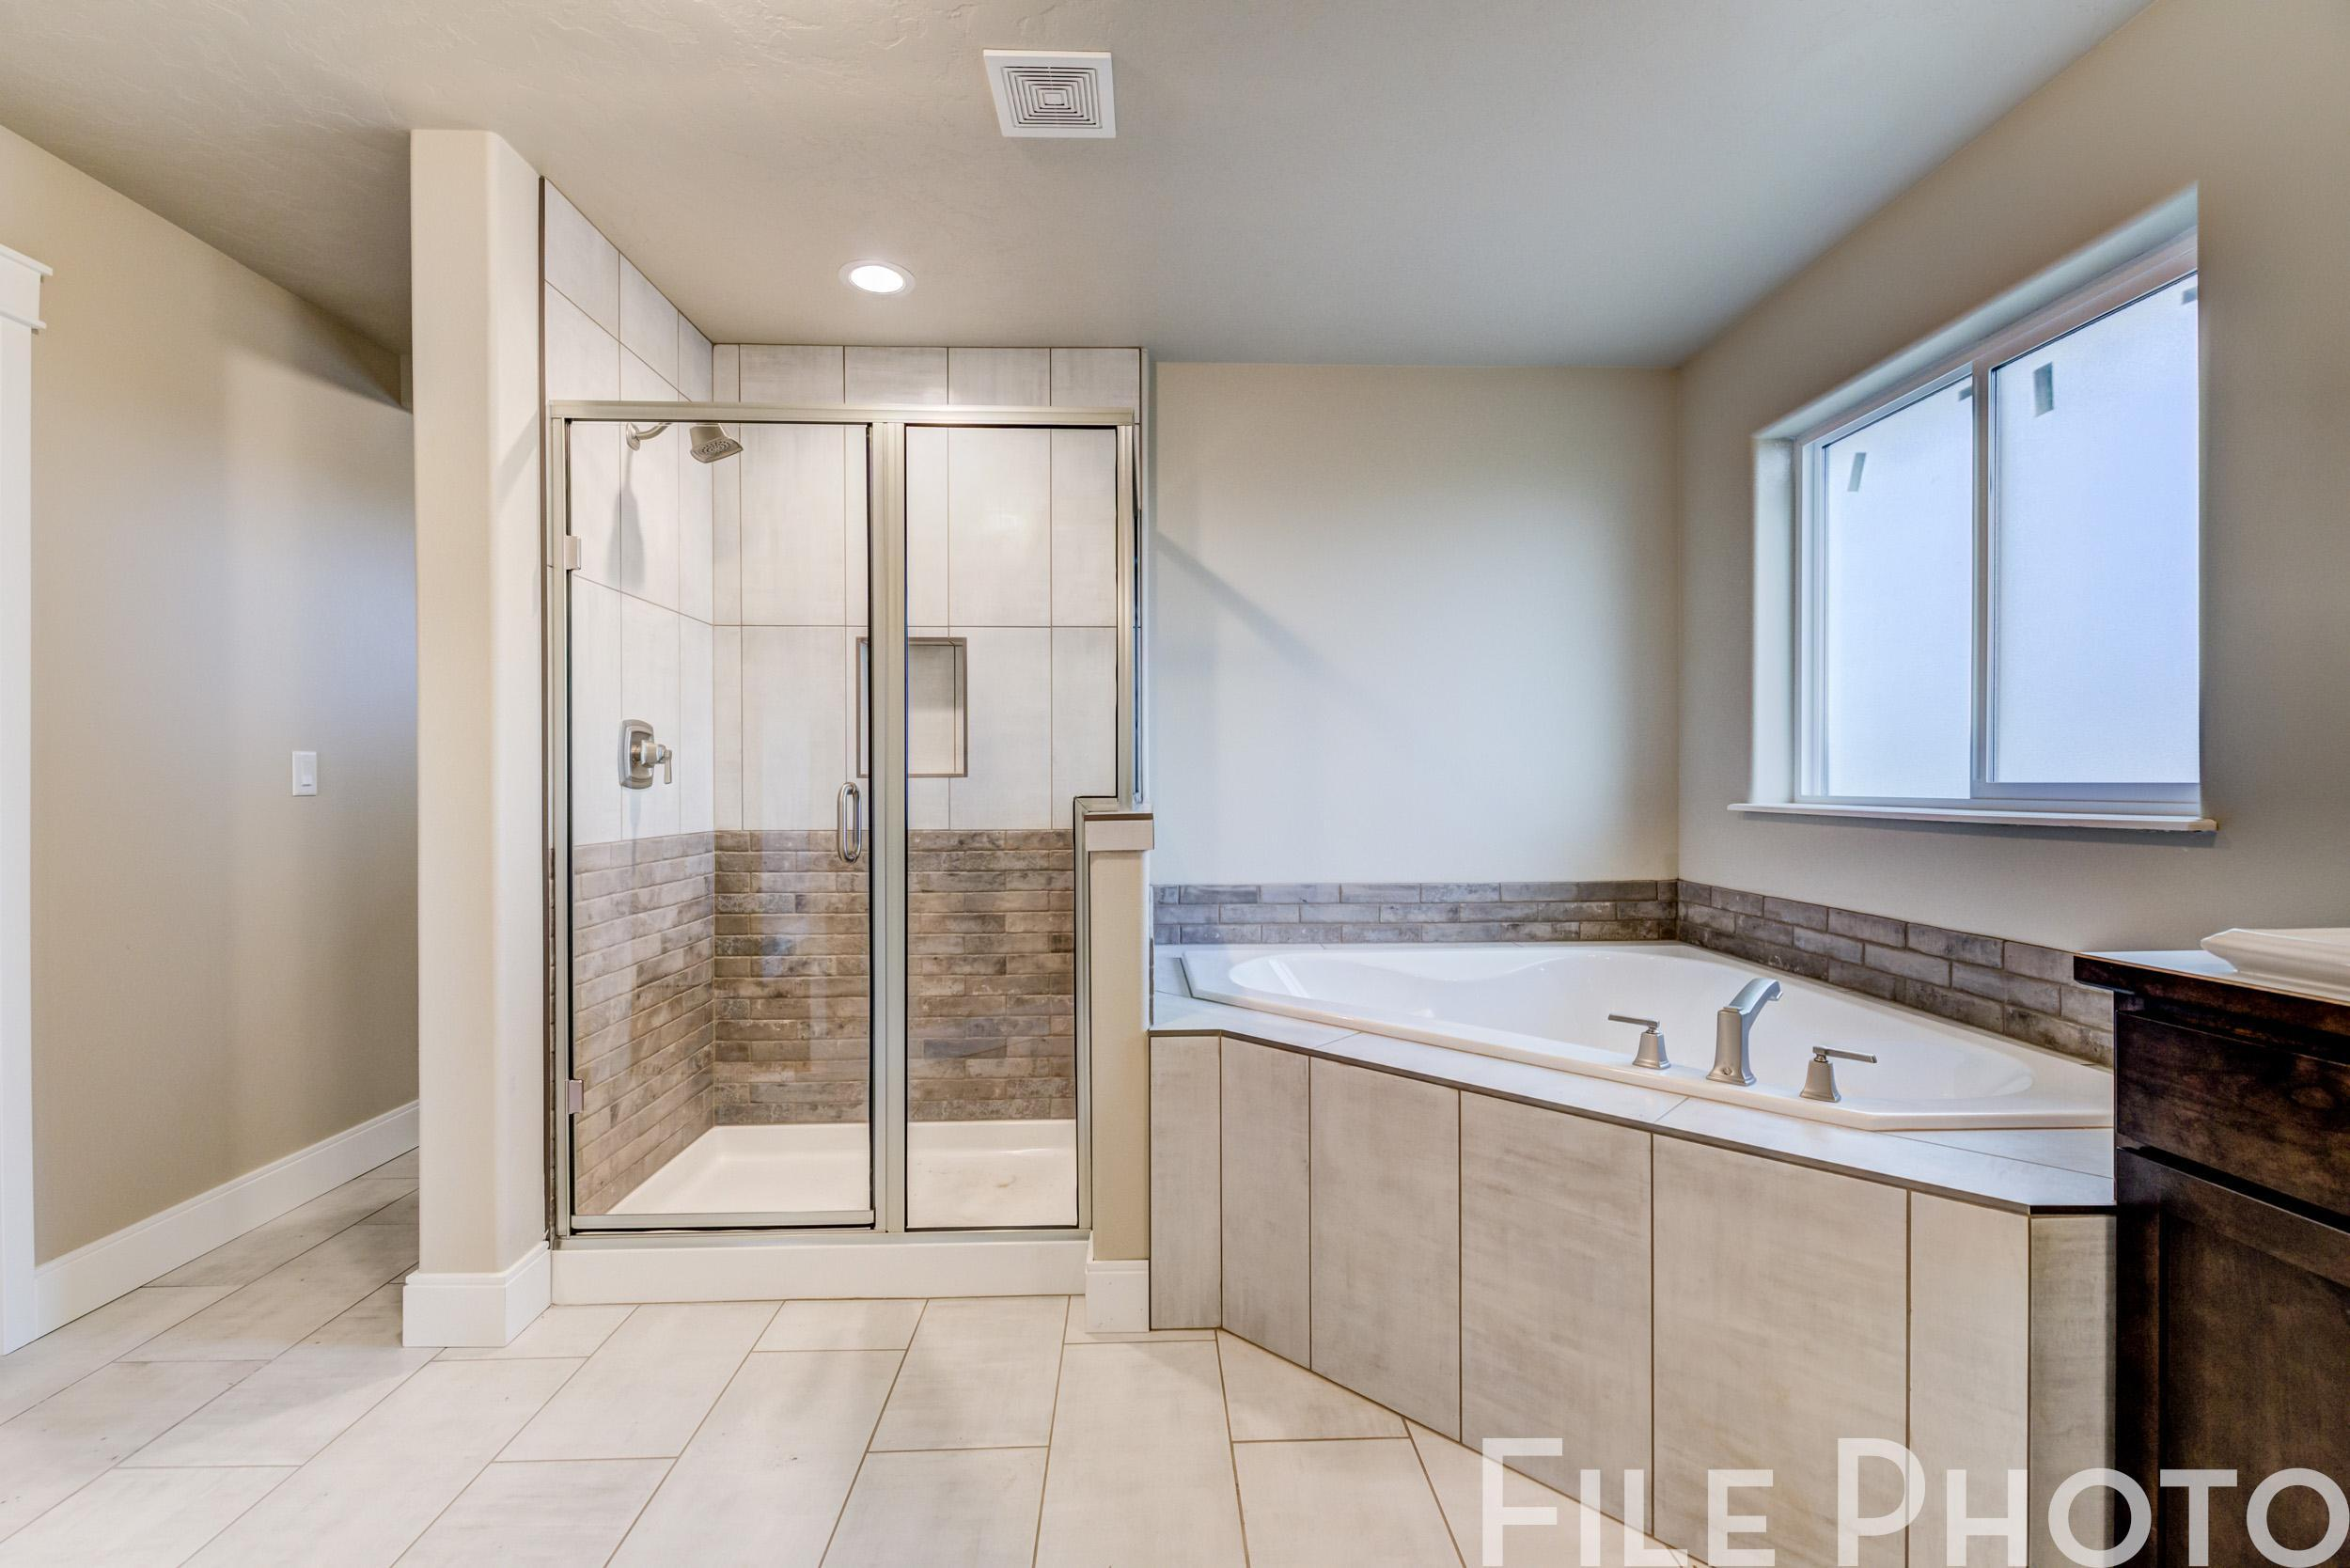 Bathroom featured in The Olympia By RYN Built Homes in Spokane-Couer d Alene, WA